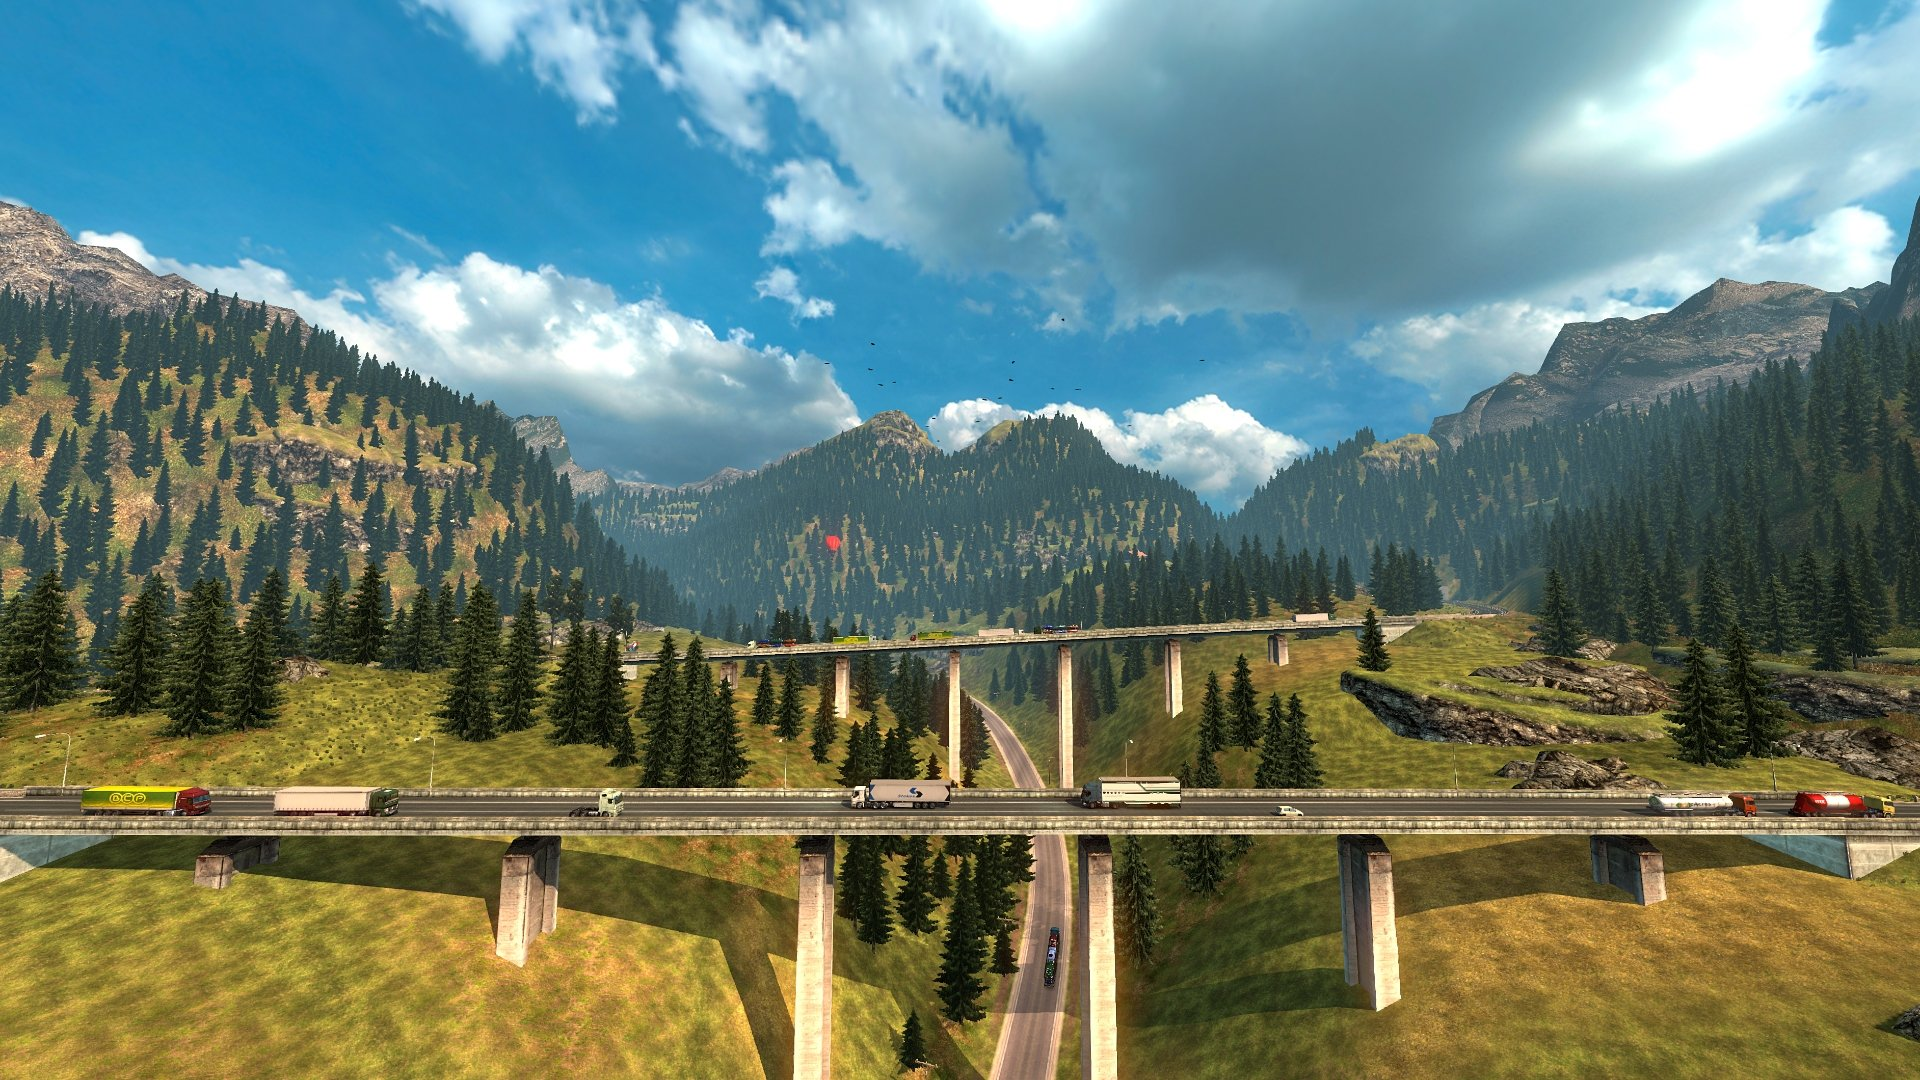 Euro Truck Simulator 2 - Download for Mac Free